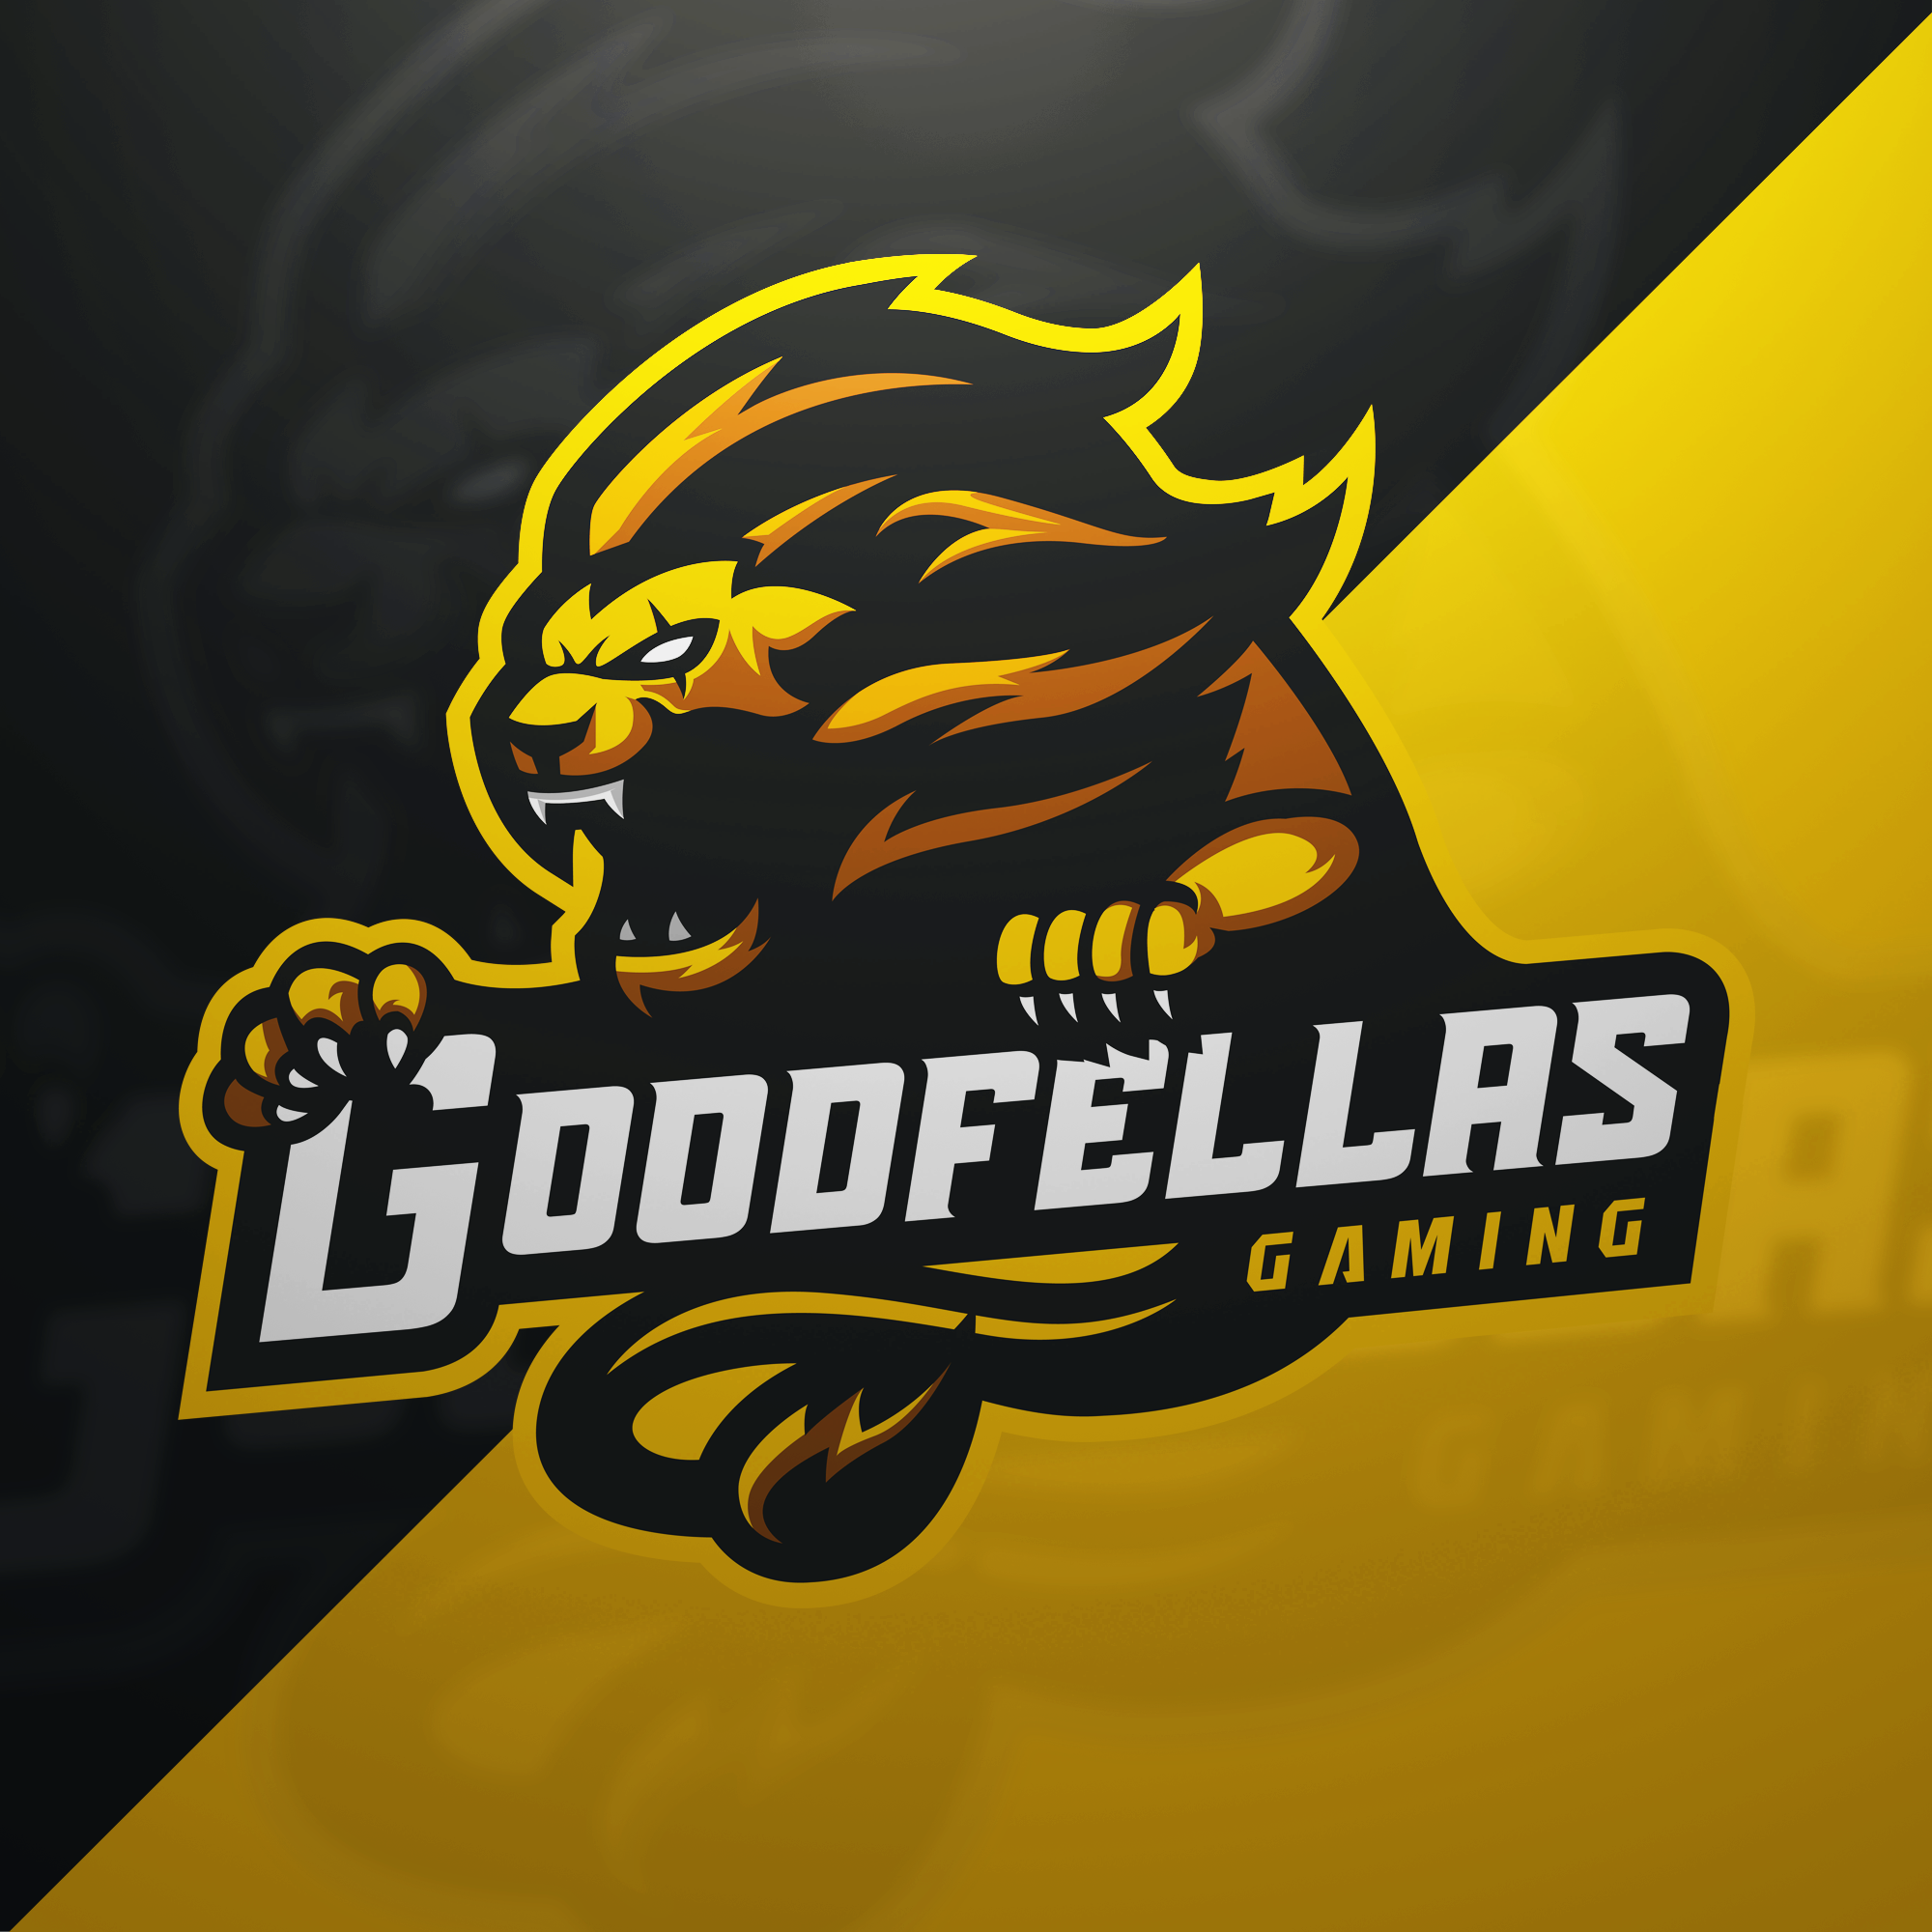 Goodfellas Gaming